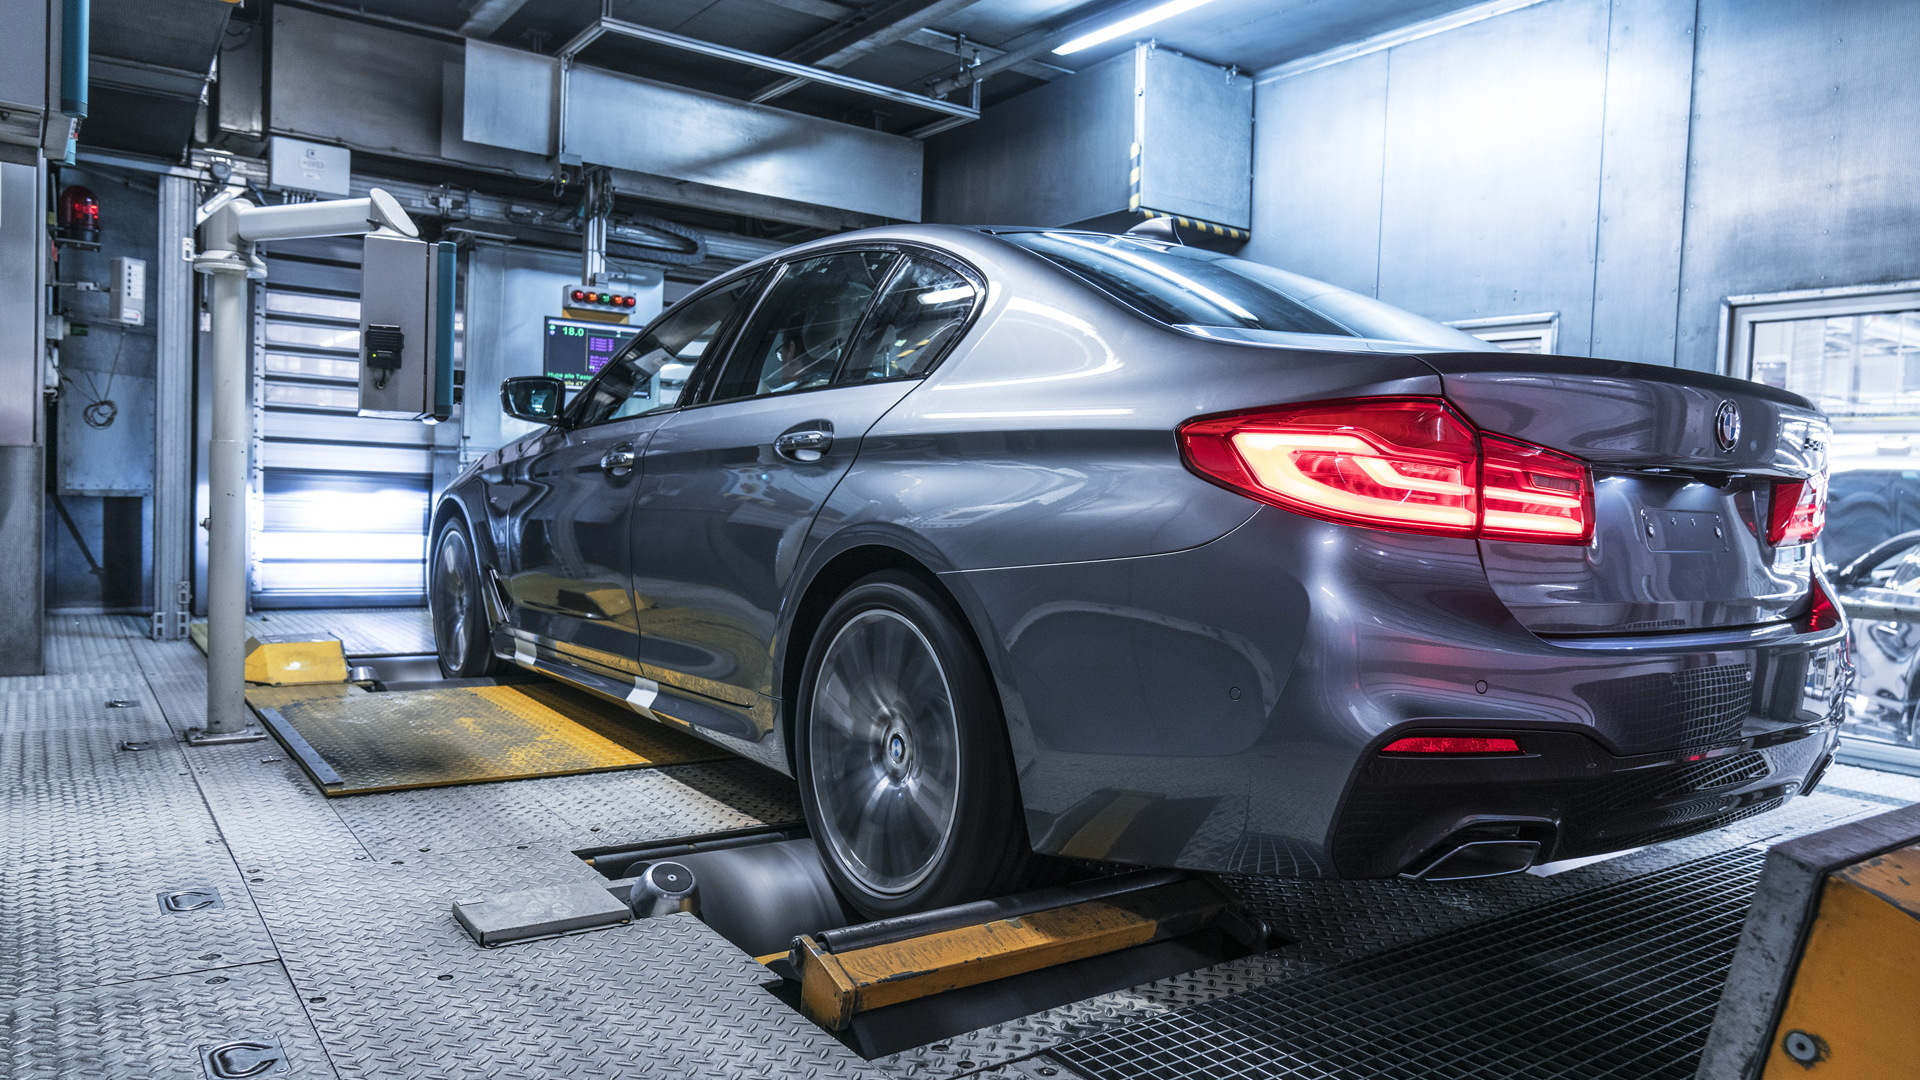 2017 BMW 5-Series production in Dingolfing, Germany